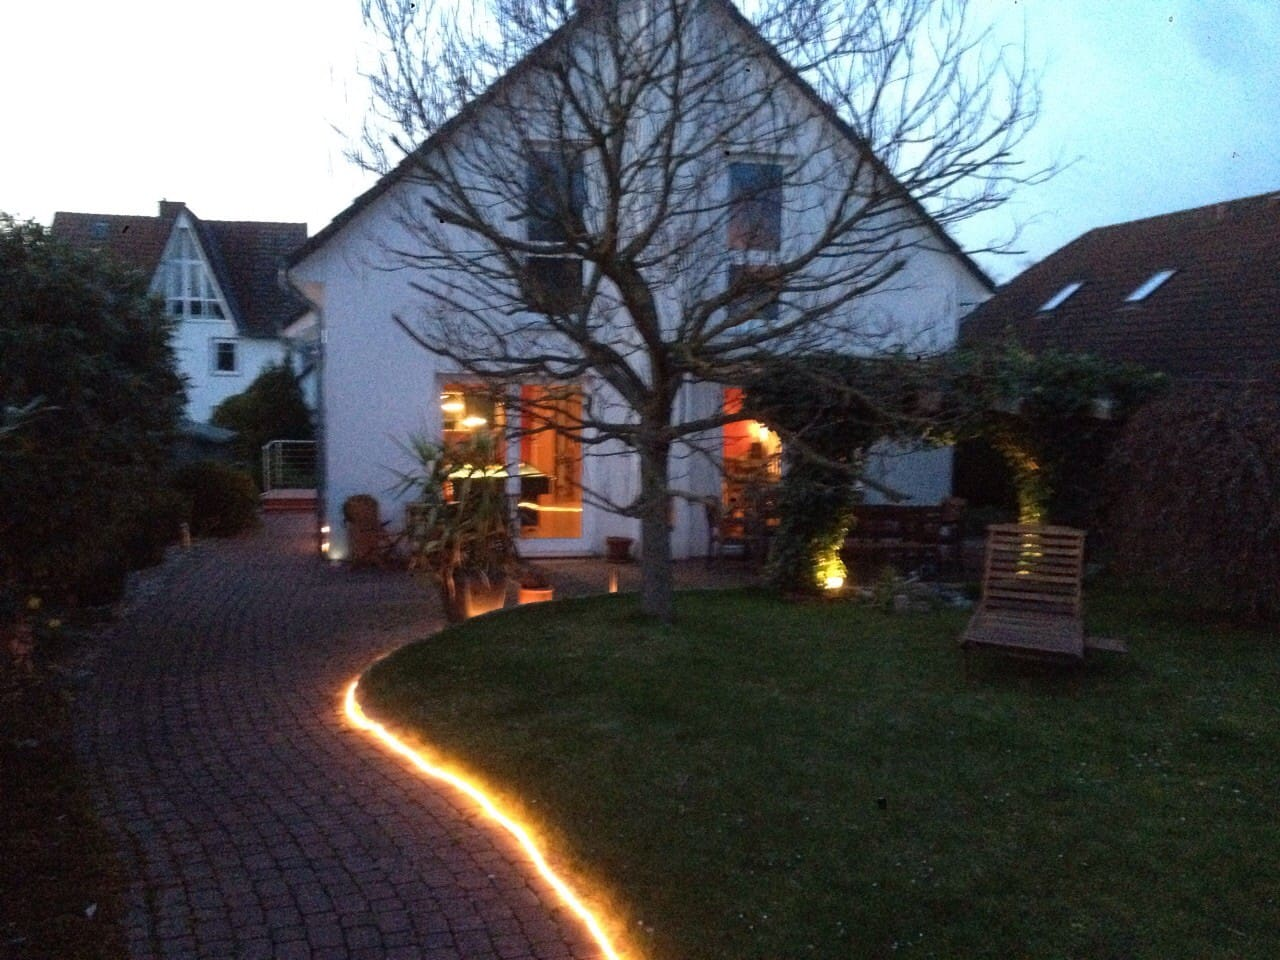 Lighted path to house